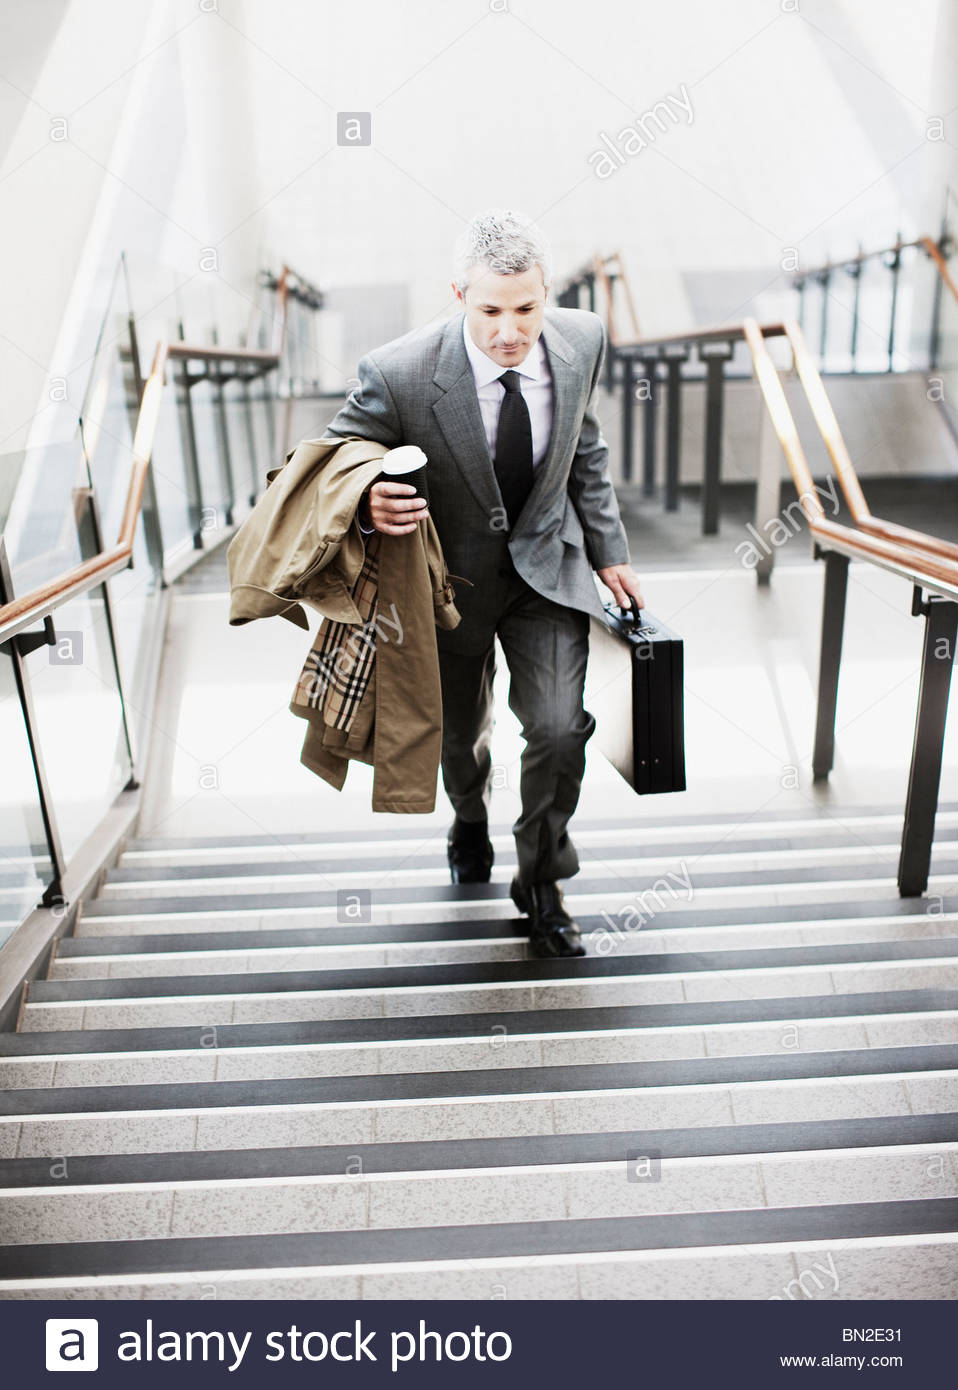 Businessman walking up stairs in train station - Stock Image